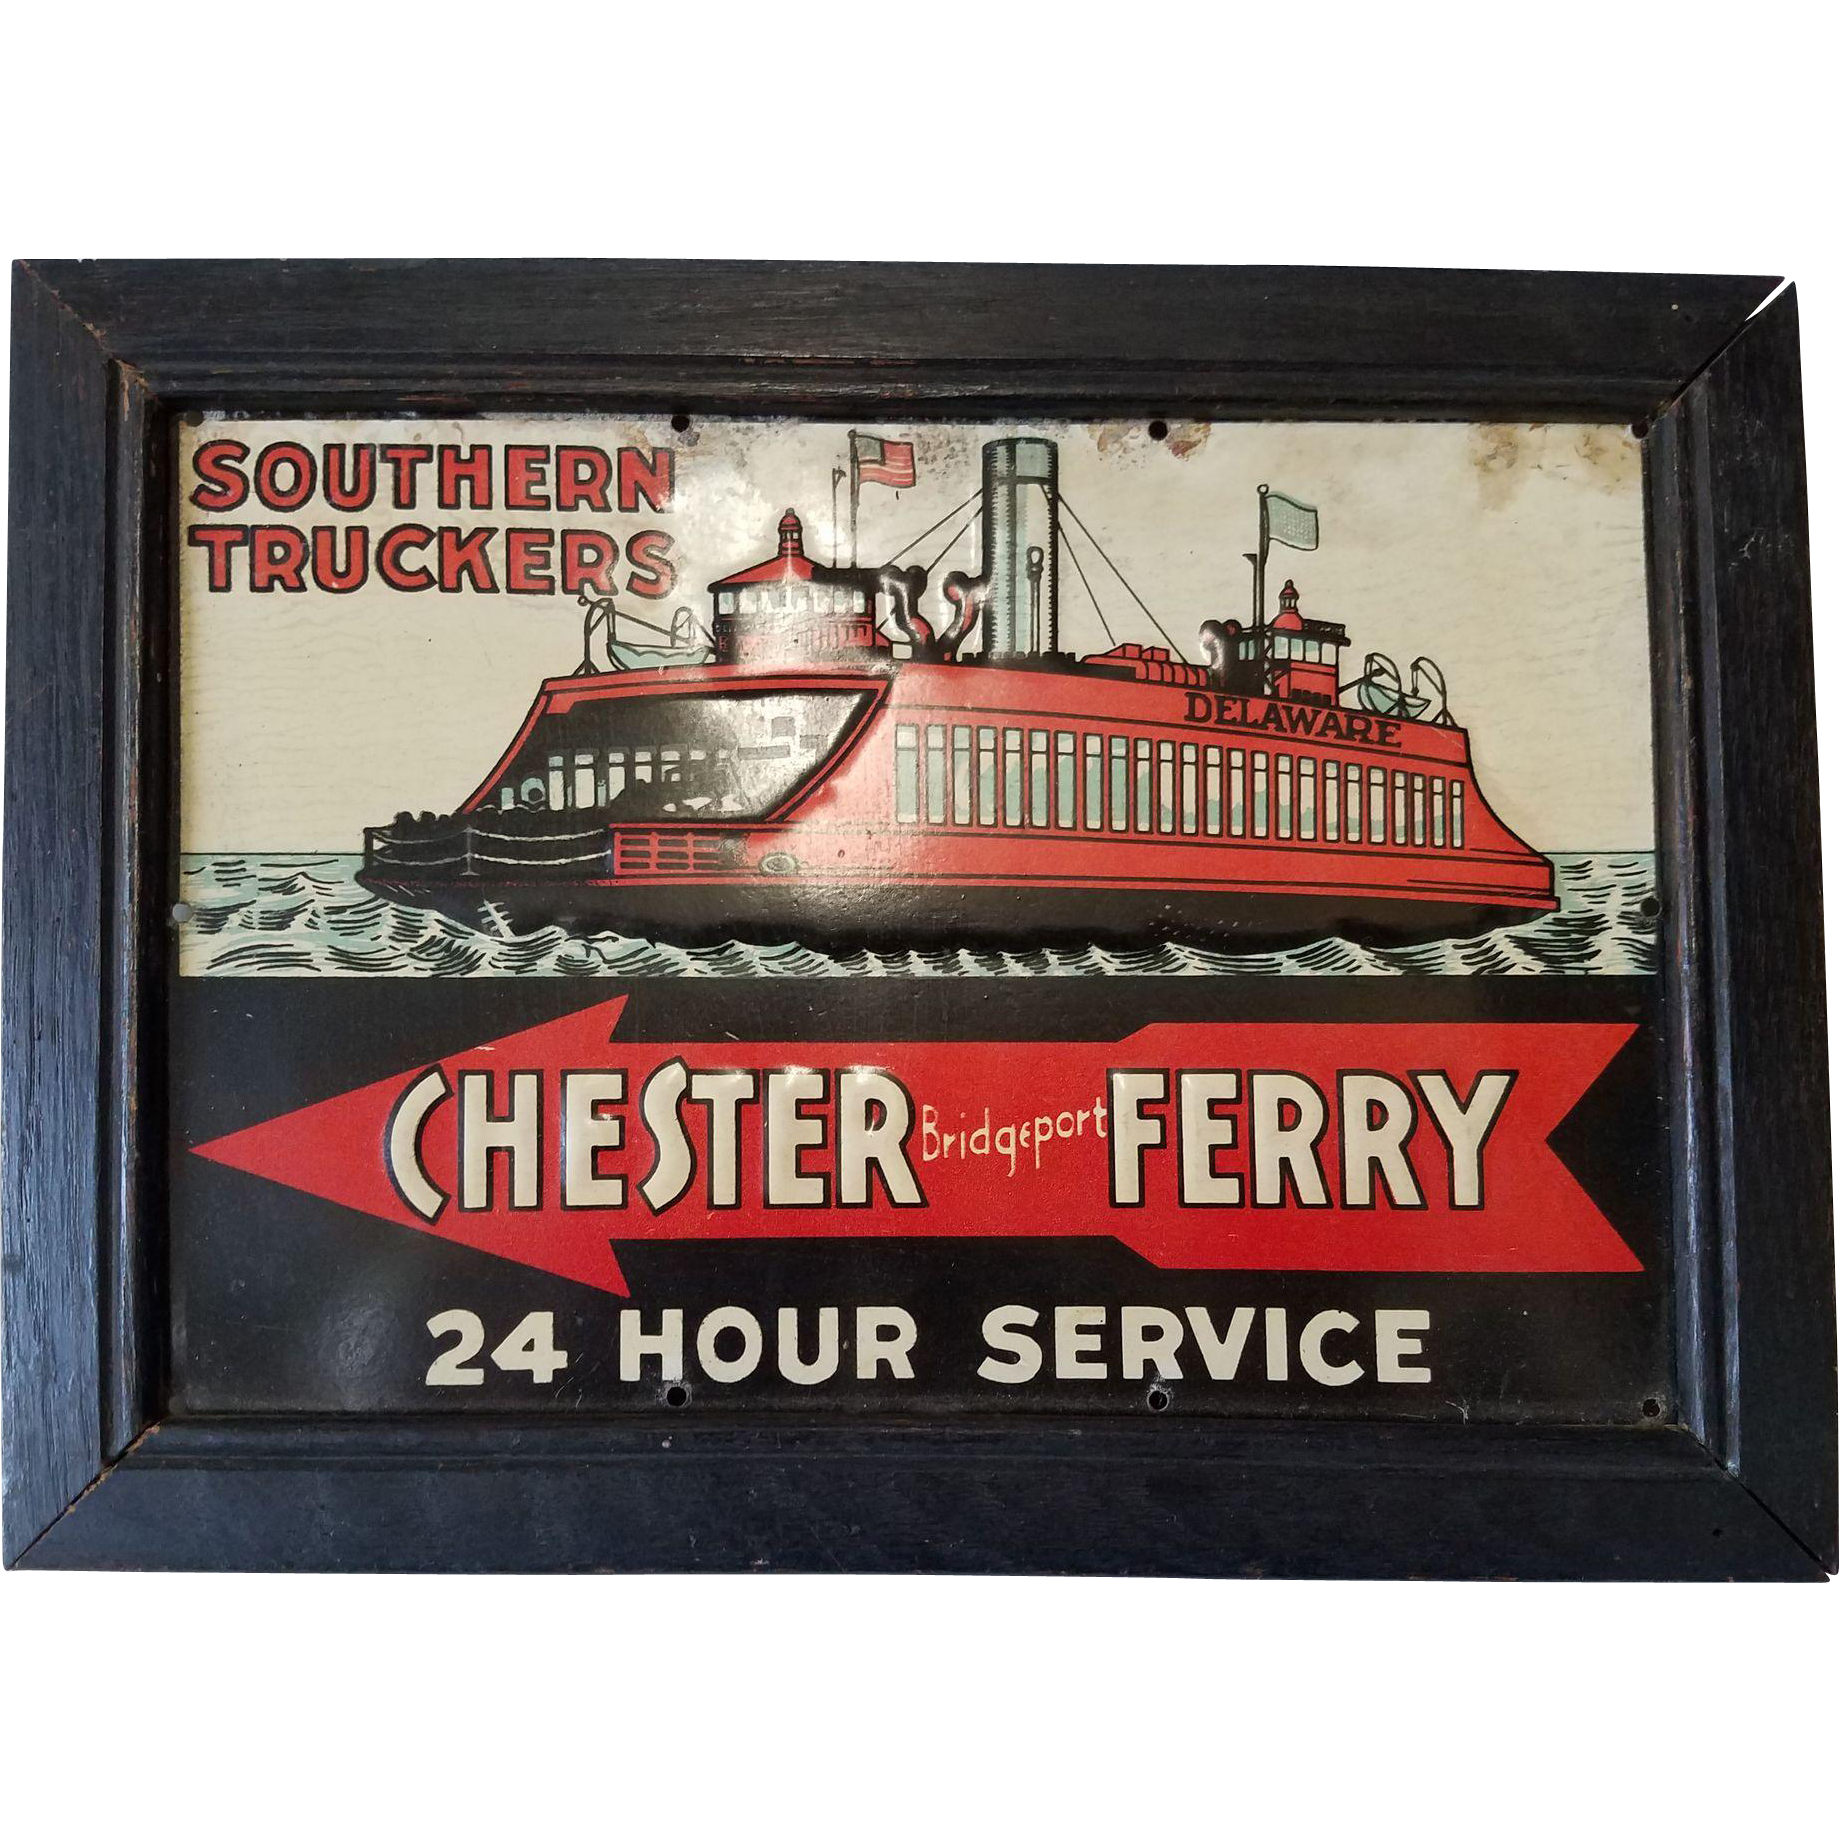 Rare Framed Porcelain Trade Sign for the Chester (PA) - Bridgeport (NJ) Ferry Service